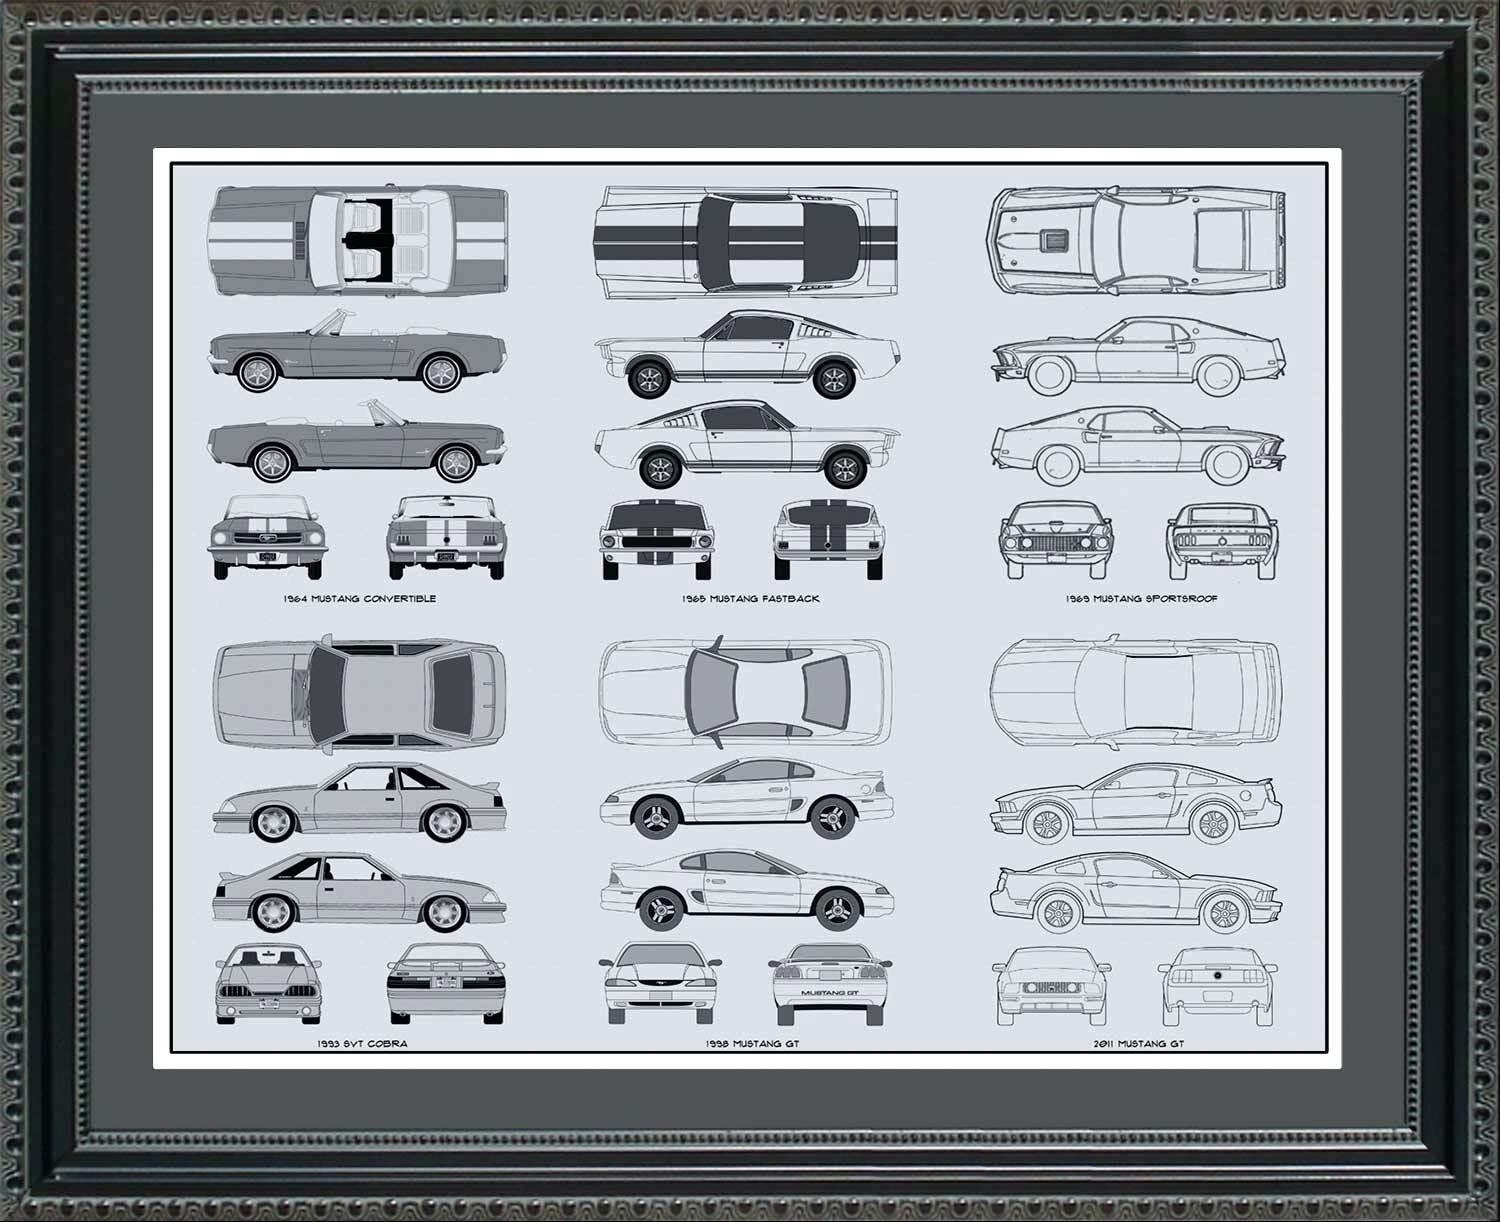 Wall art ideas ford mustang metal wall art explore 18 of 20 photos wall ideas vintage blueprint wall art plane blueprint wall art within ford mustang metal wall malvernweather Gallery